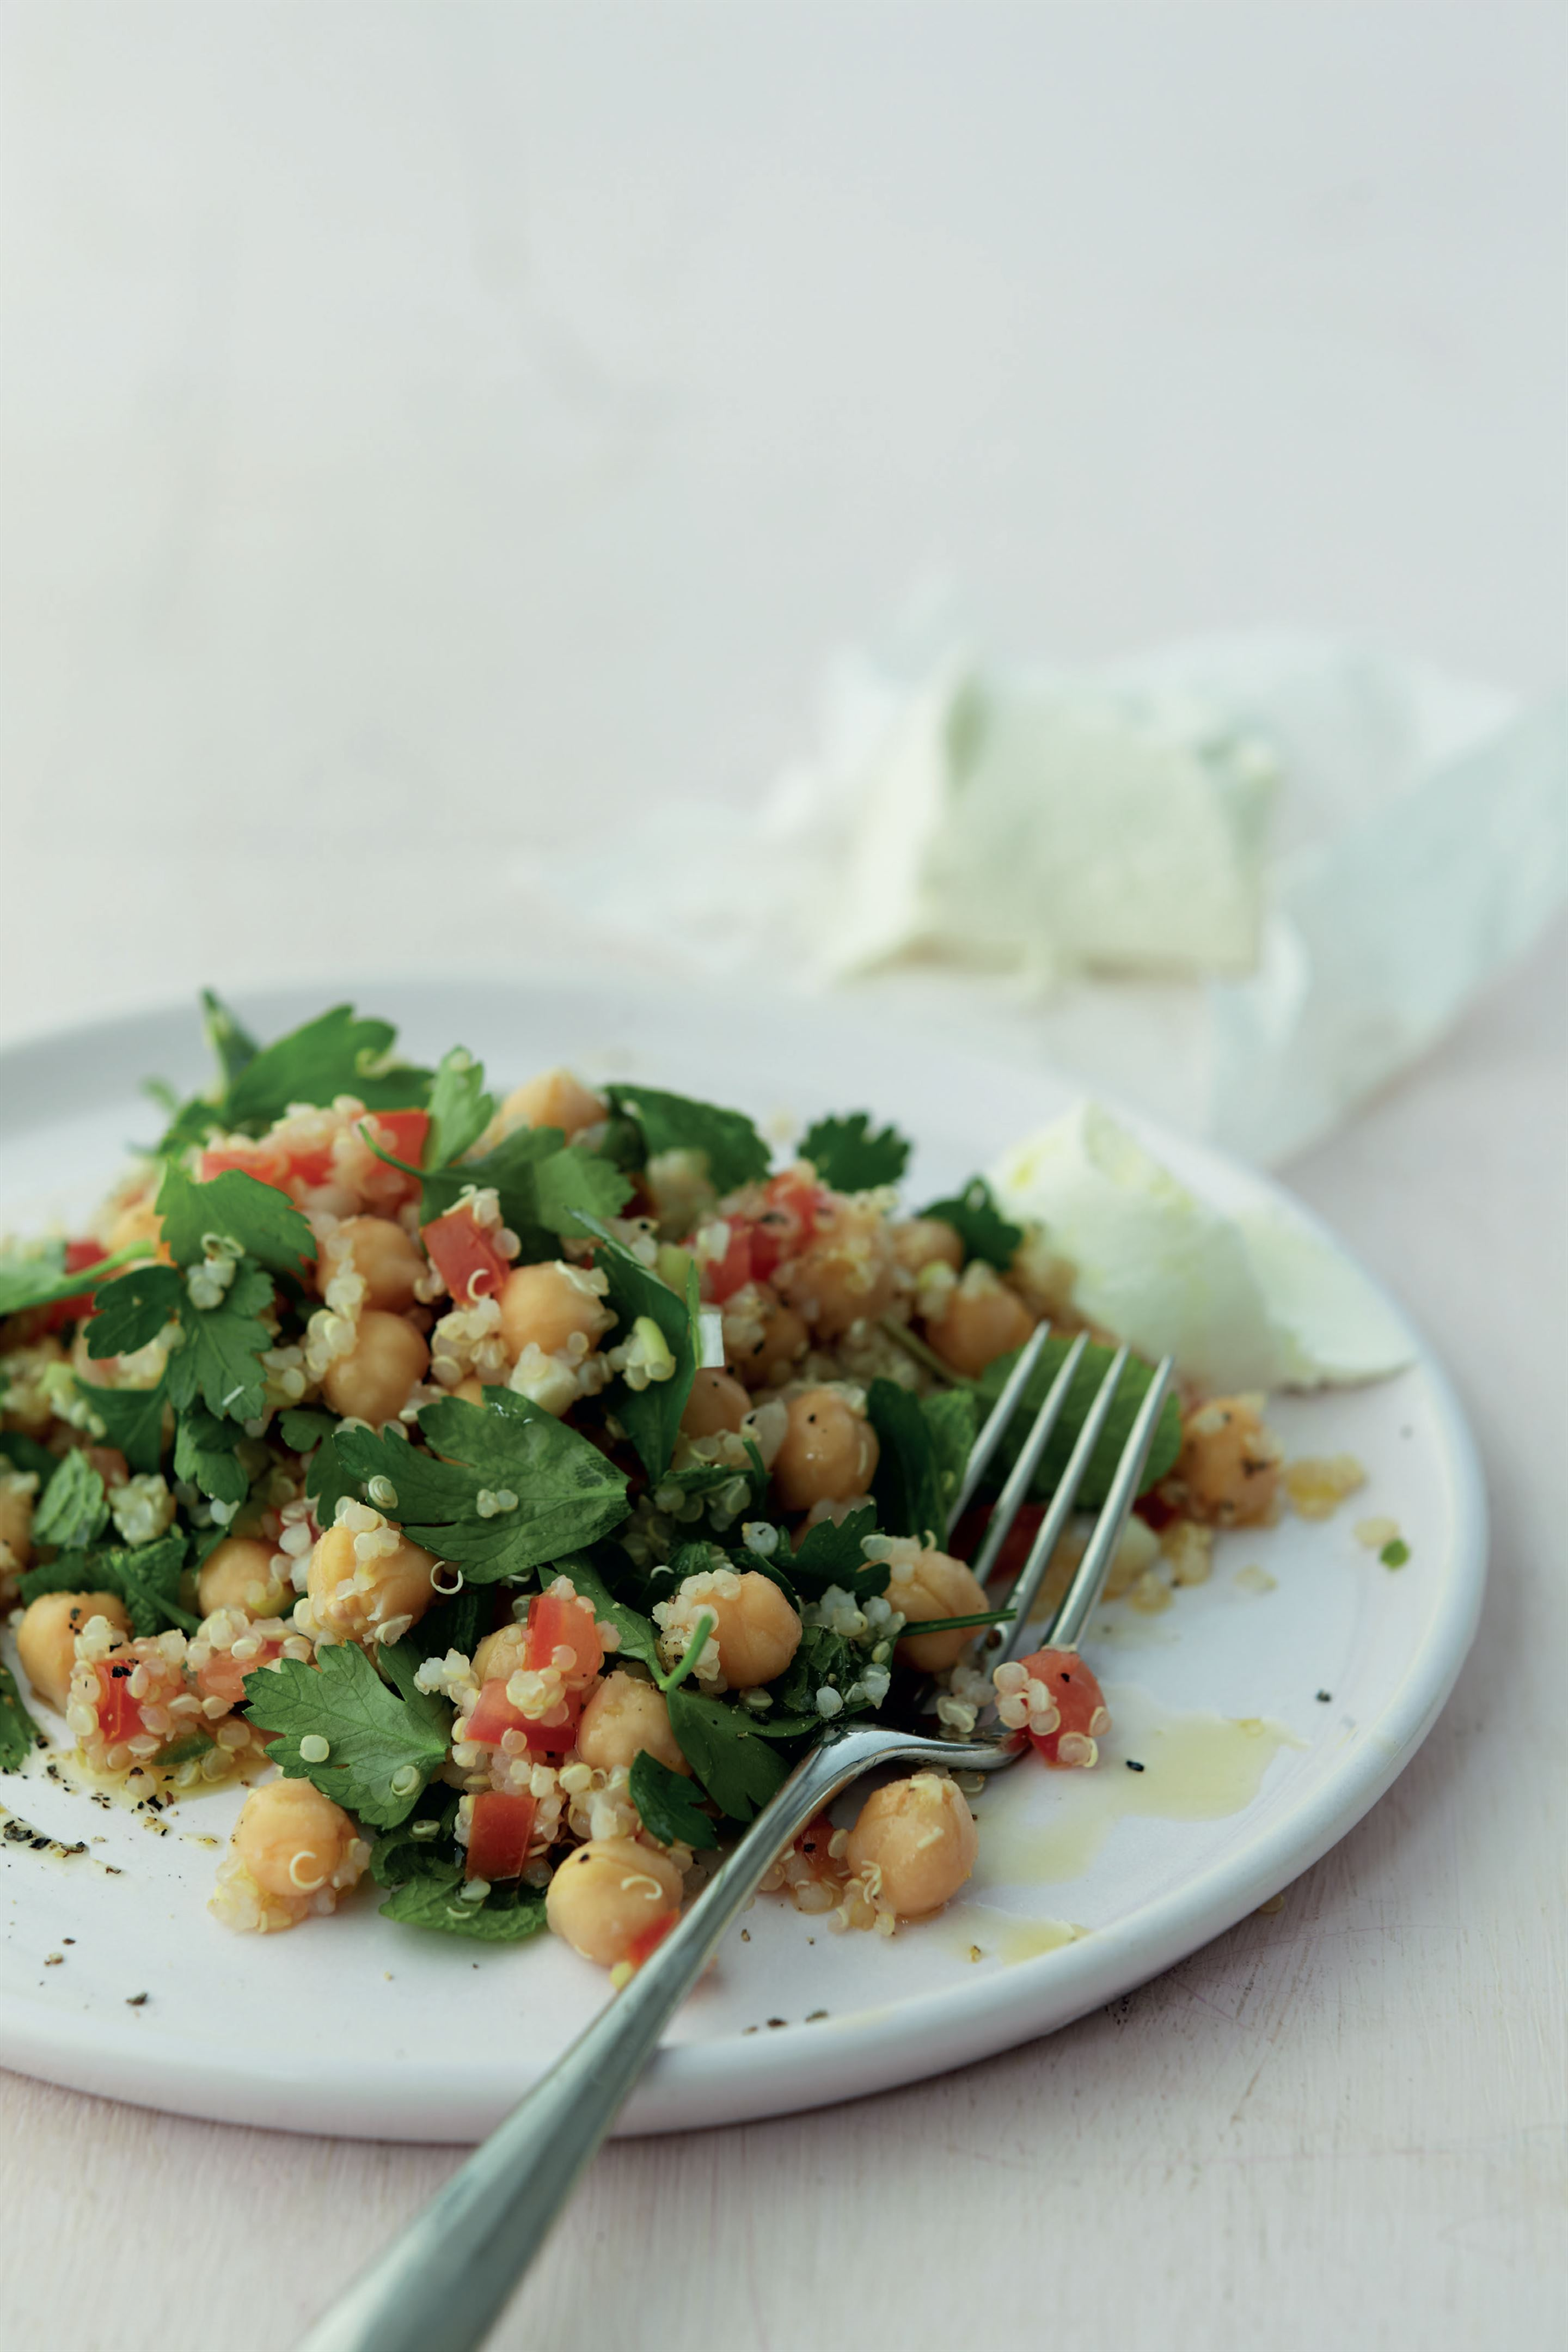 Herby quinoa and chickpea salad